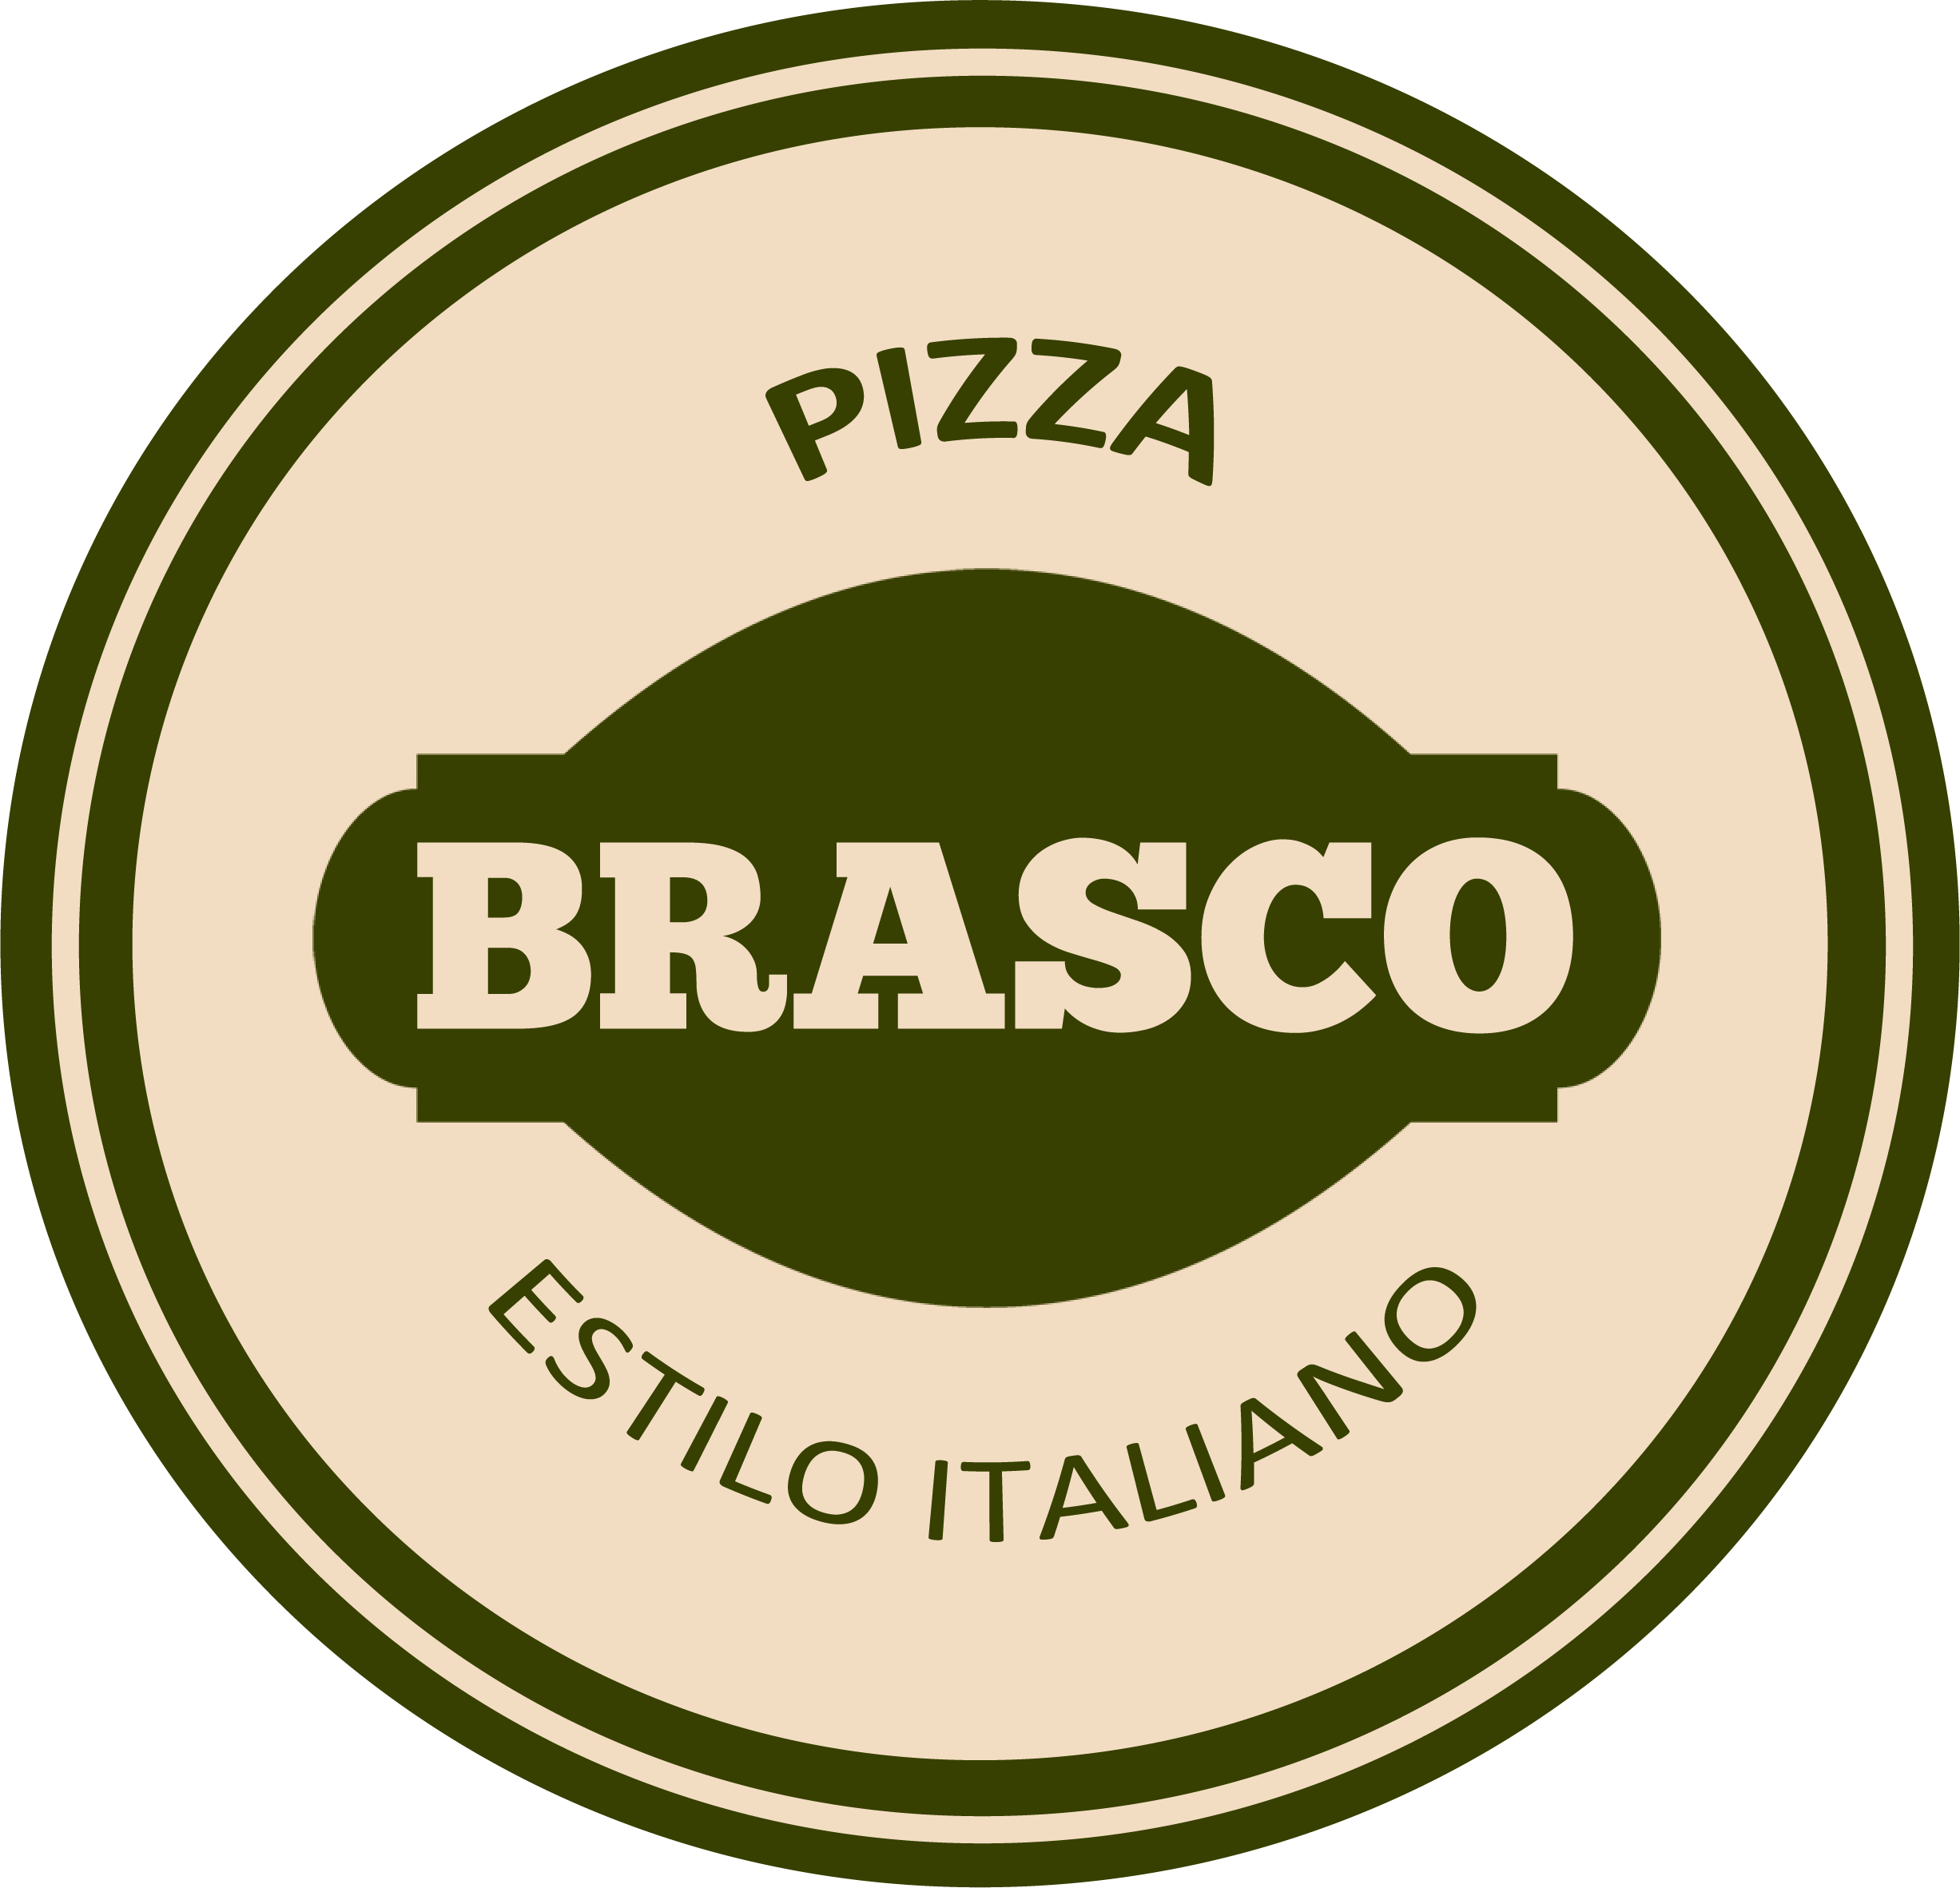 Pizza Brasco